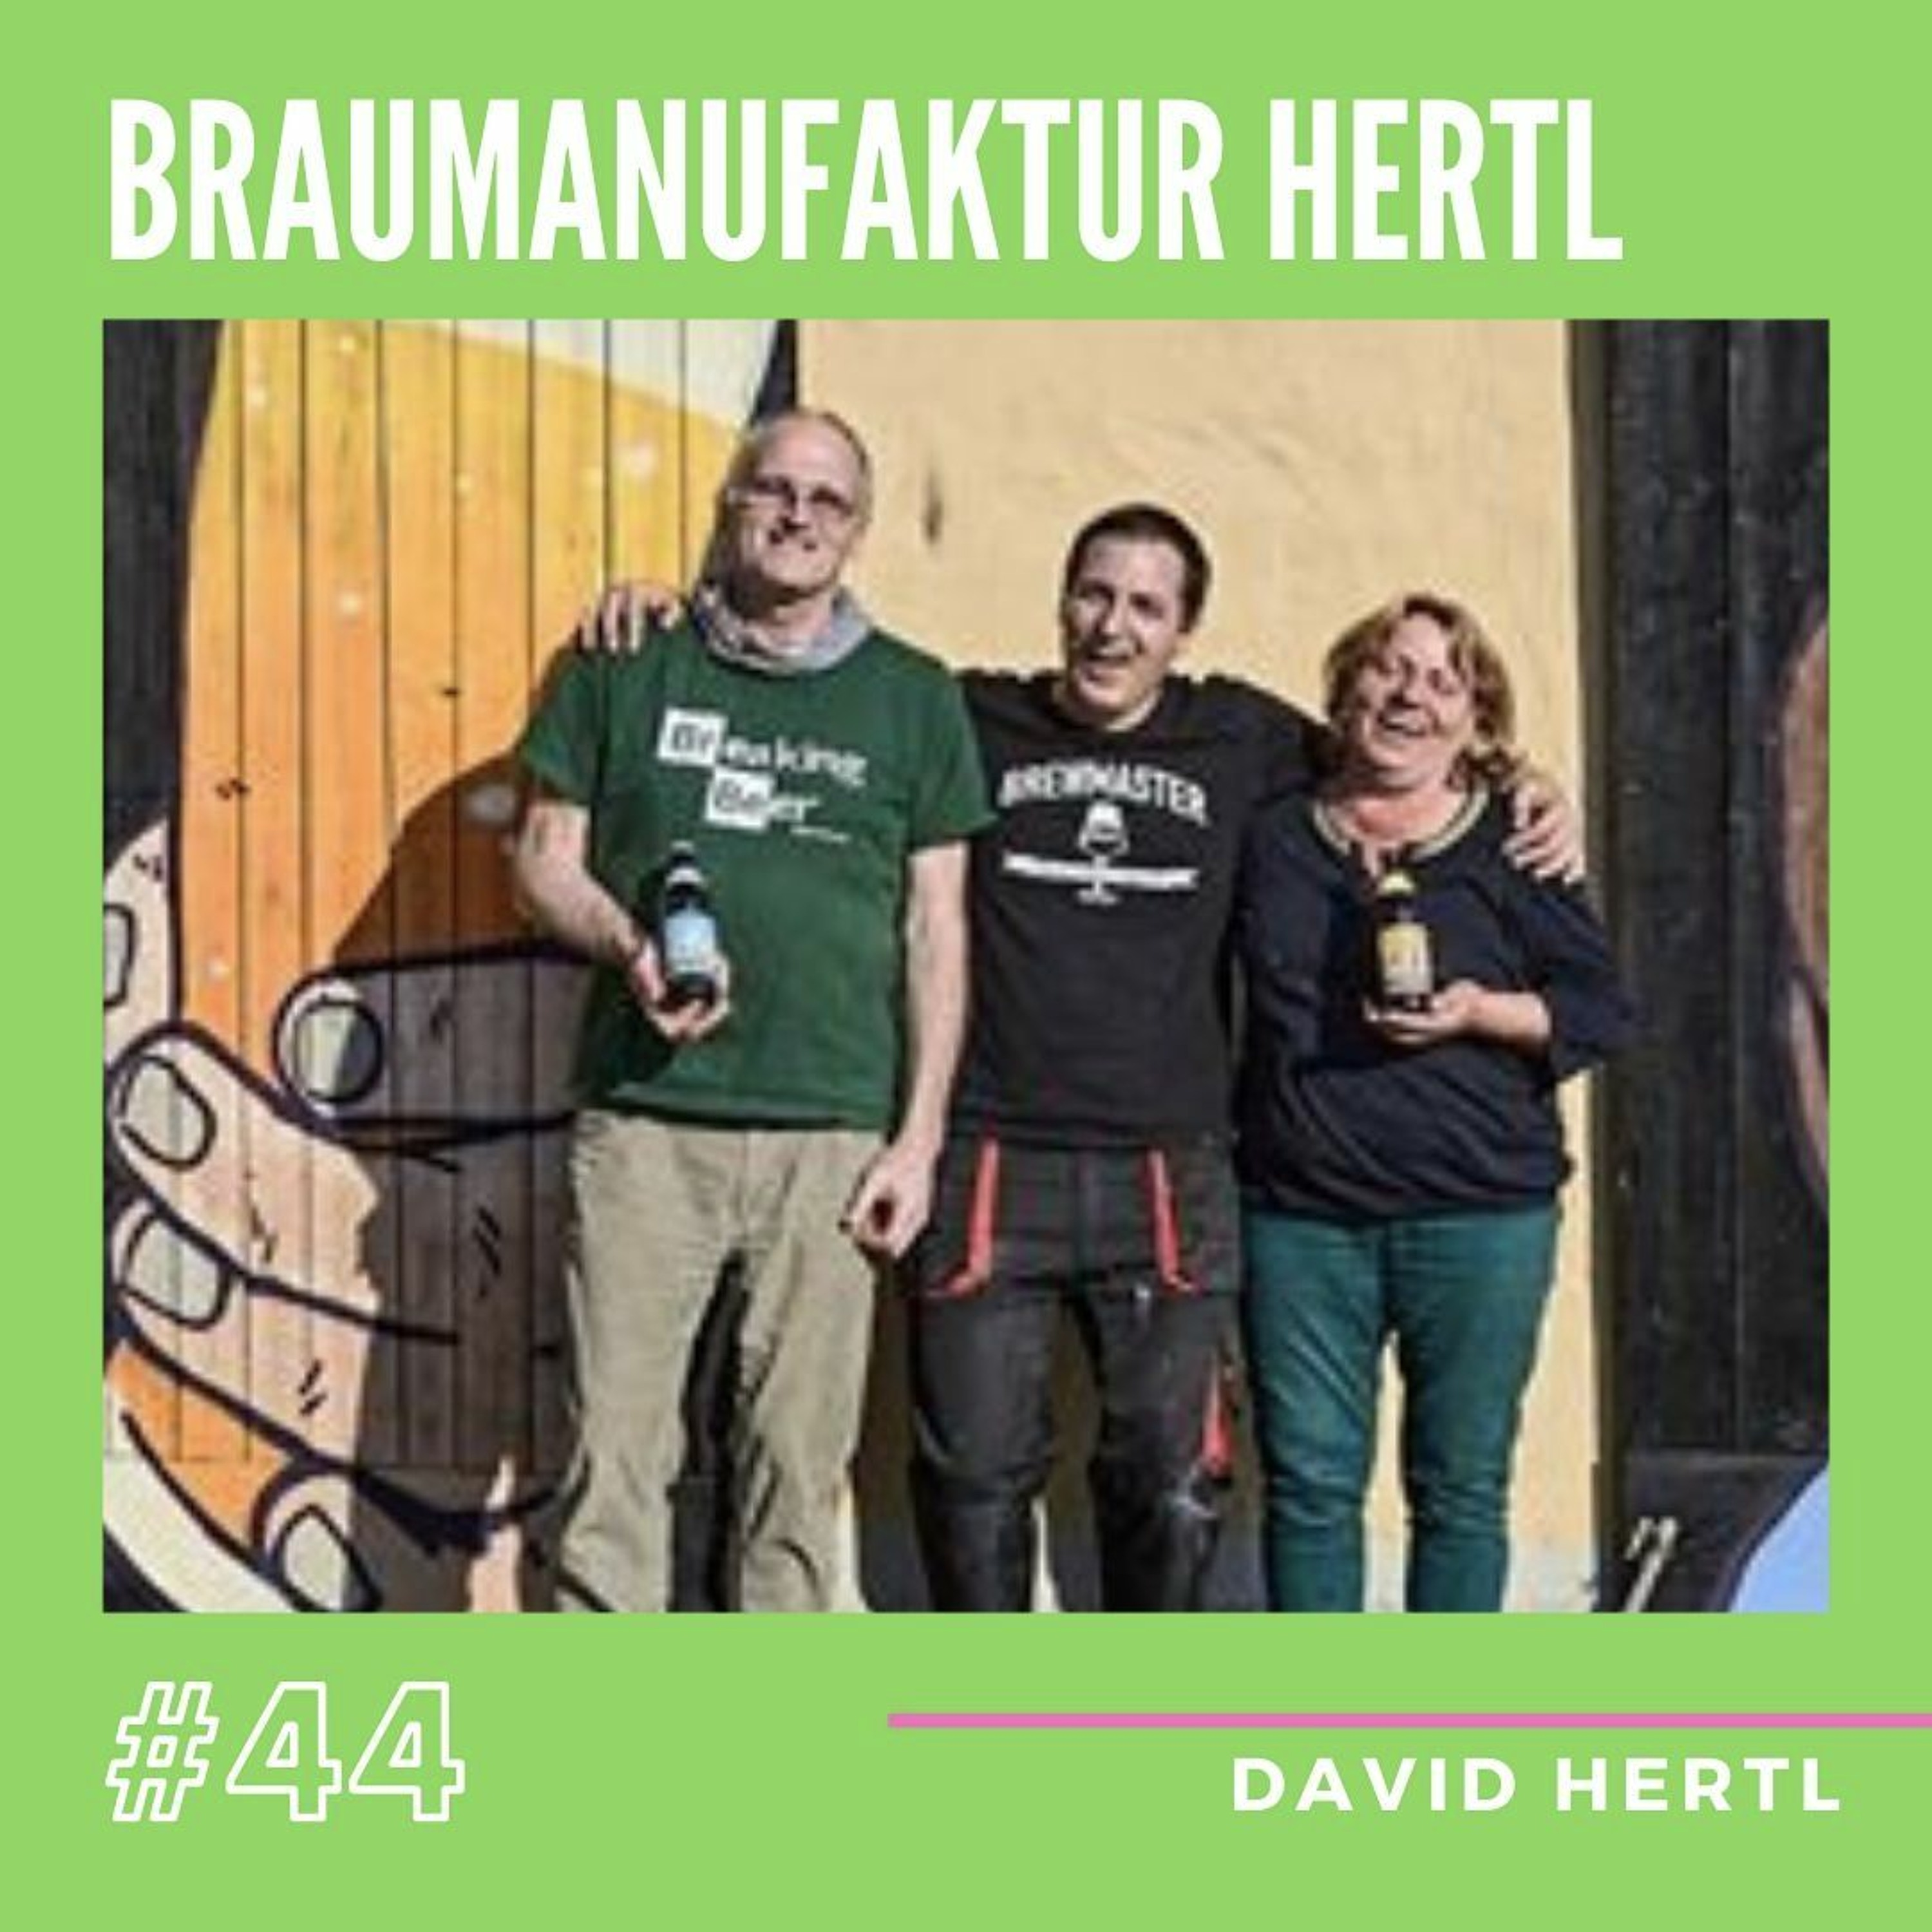 HHopcast Podcast #44 David Hertl, Braumanufaktur Hertl